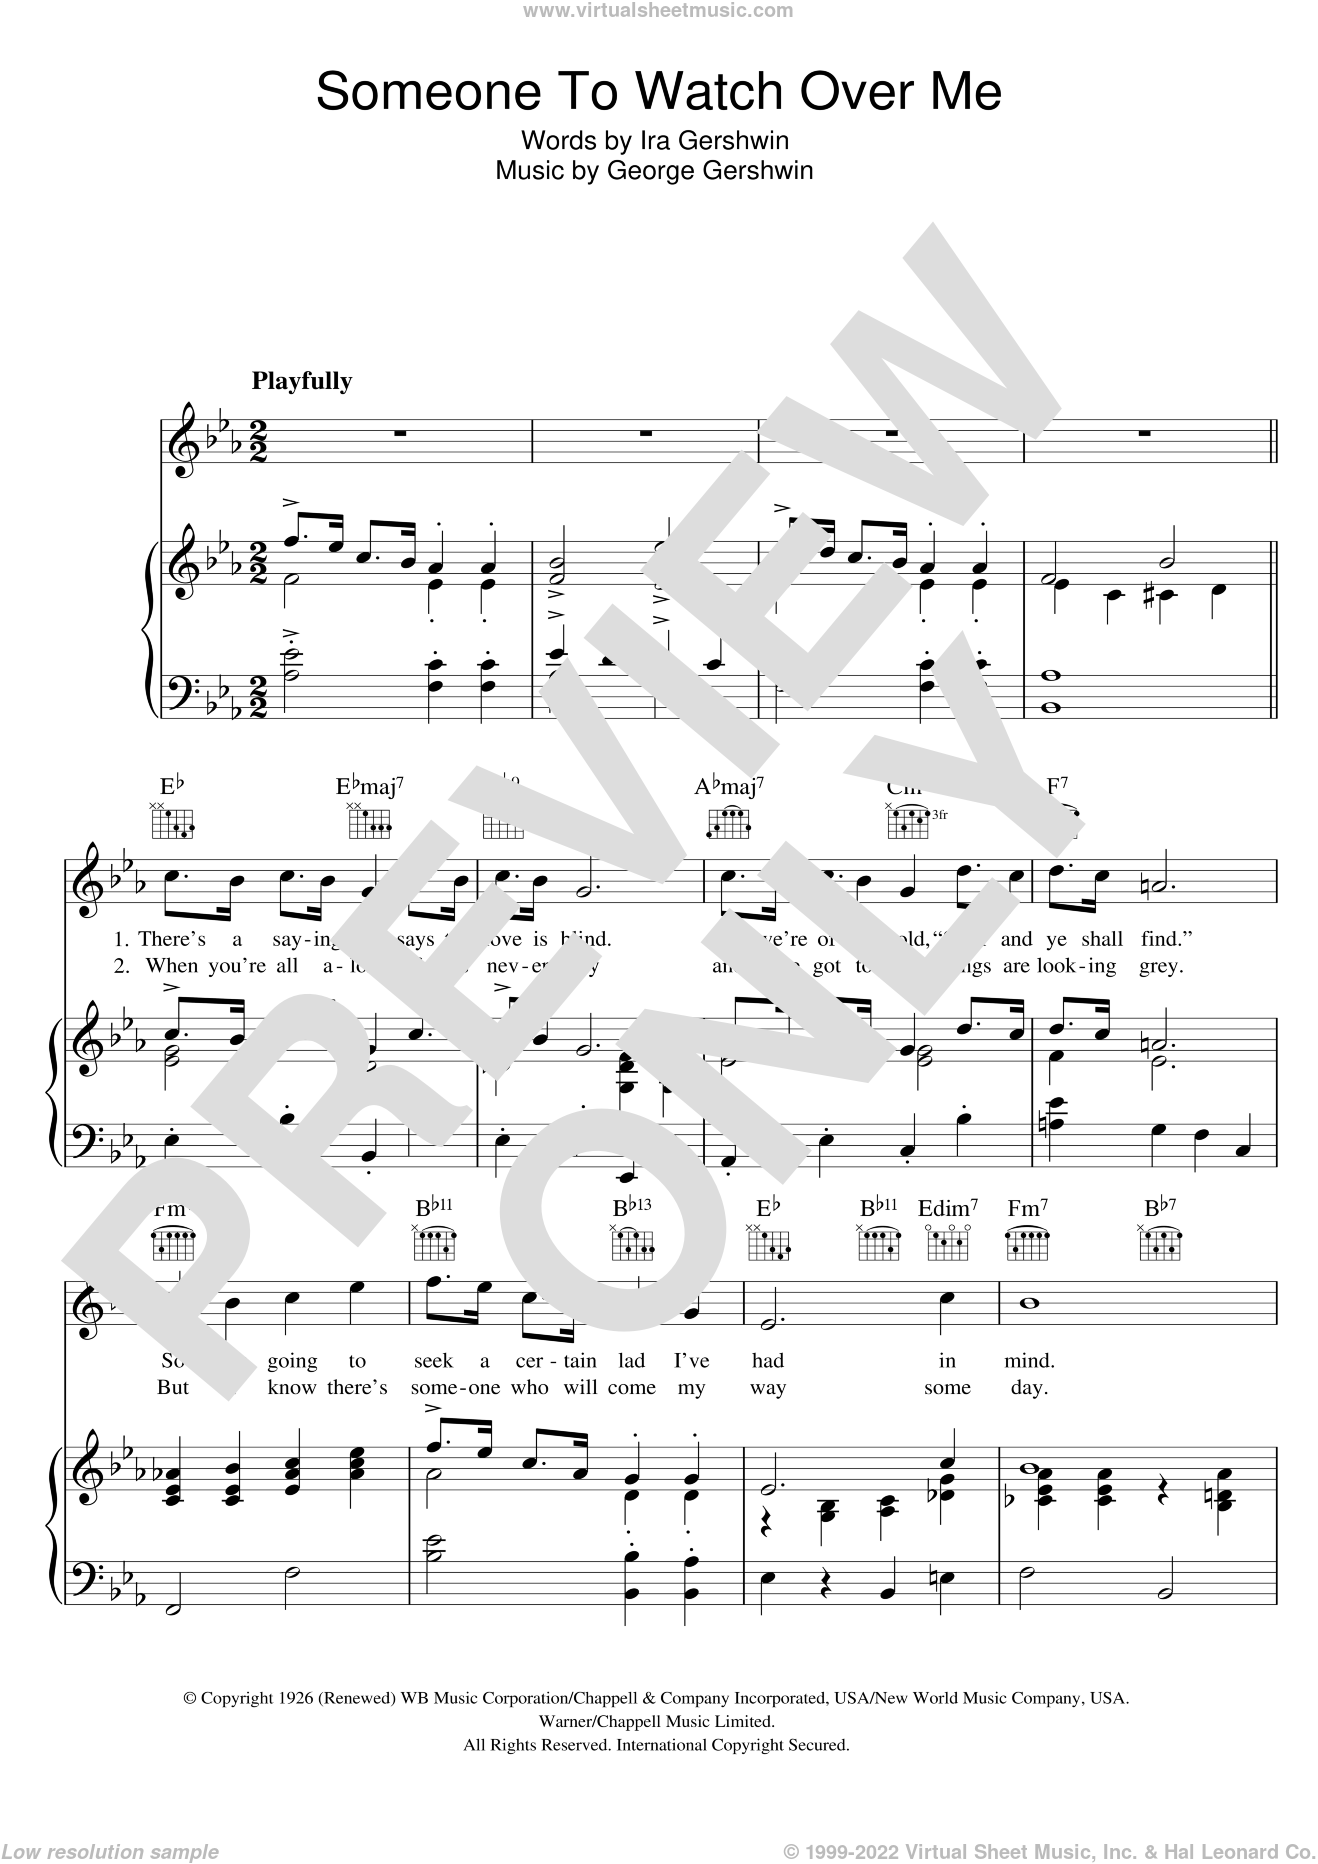 Someone To Watch Over Me sheet music for voice, piano or guitar by Ira Gershwin and George Gershwin. Score Image Preview.